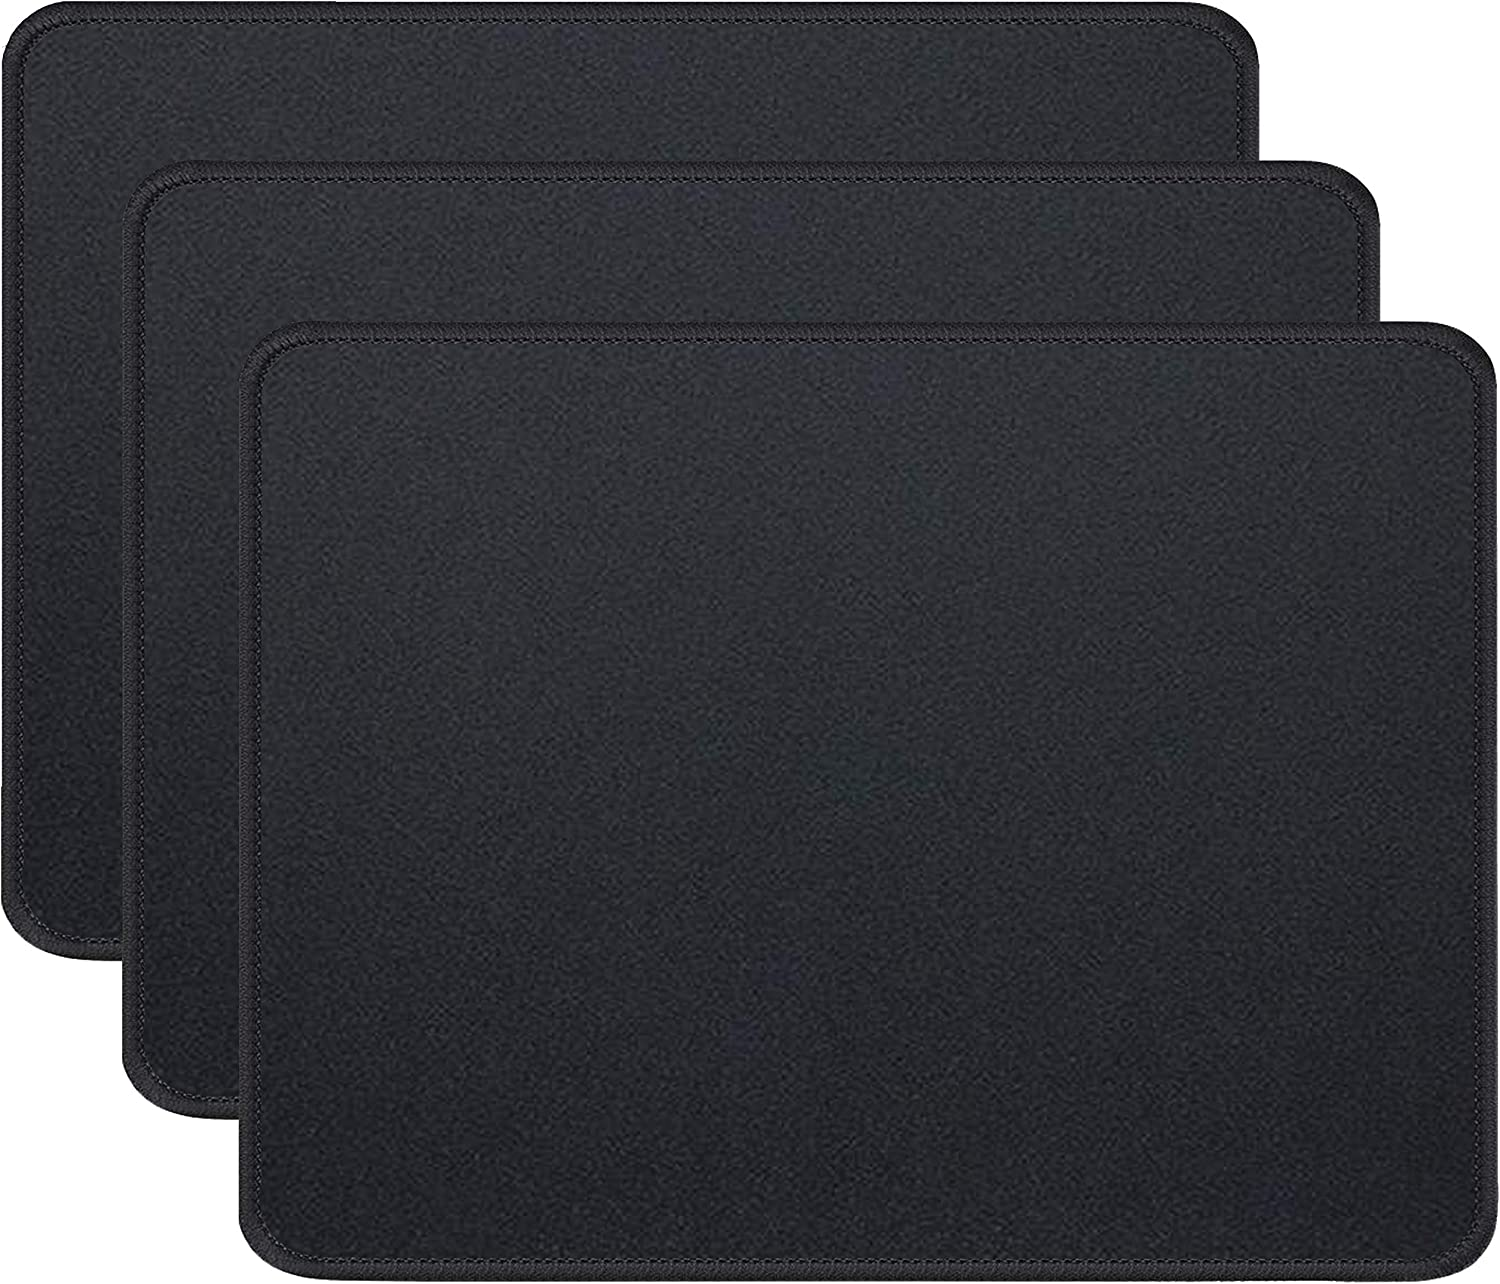 Popular shop is the lowest price challenge SALENEW very popular Gimnor 3 Pack Standard Mouse Pad Comfortabl with Edges Stitched